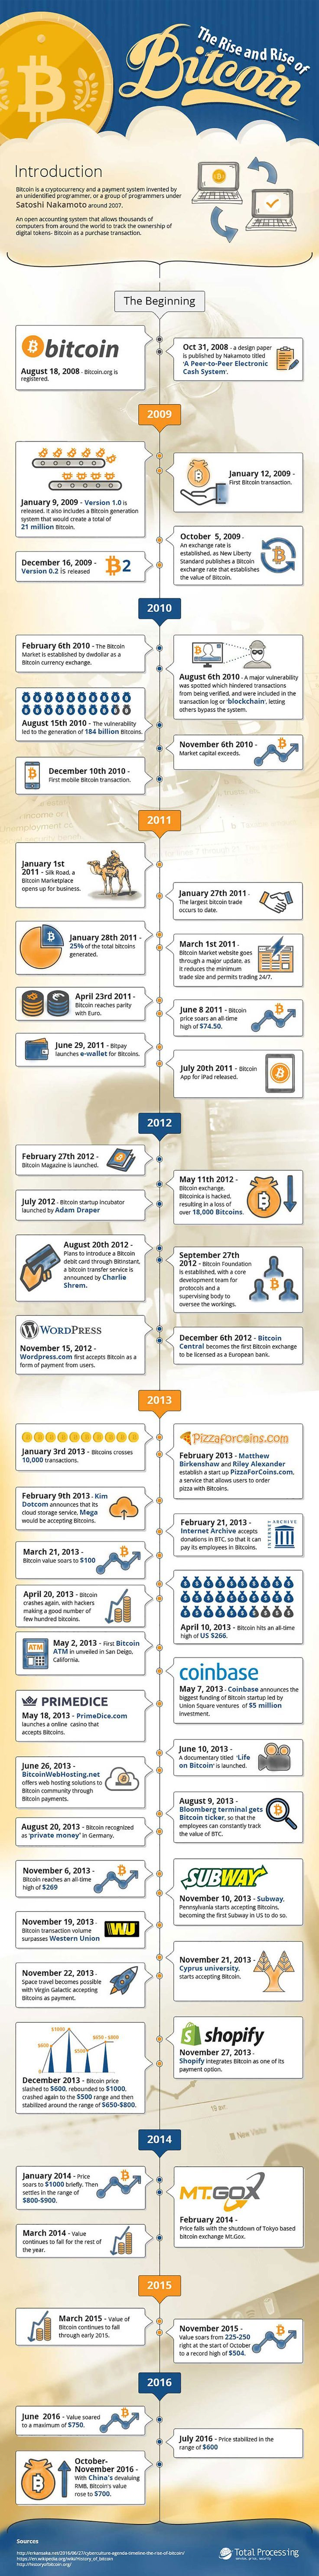 The Rise and Shine of Bitcoin [Infographic]